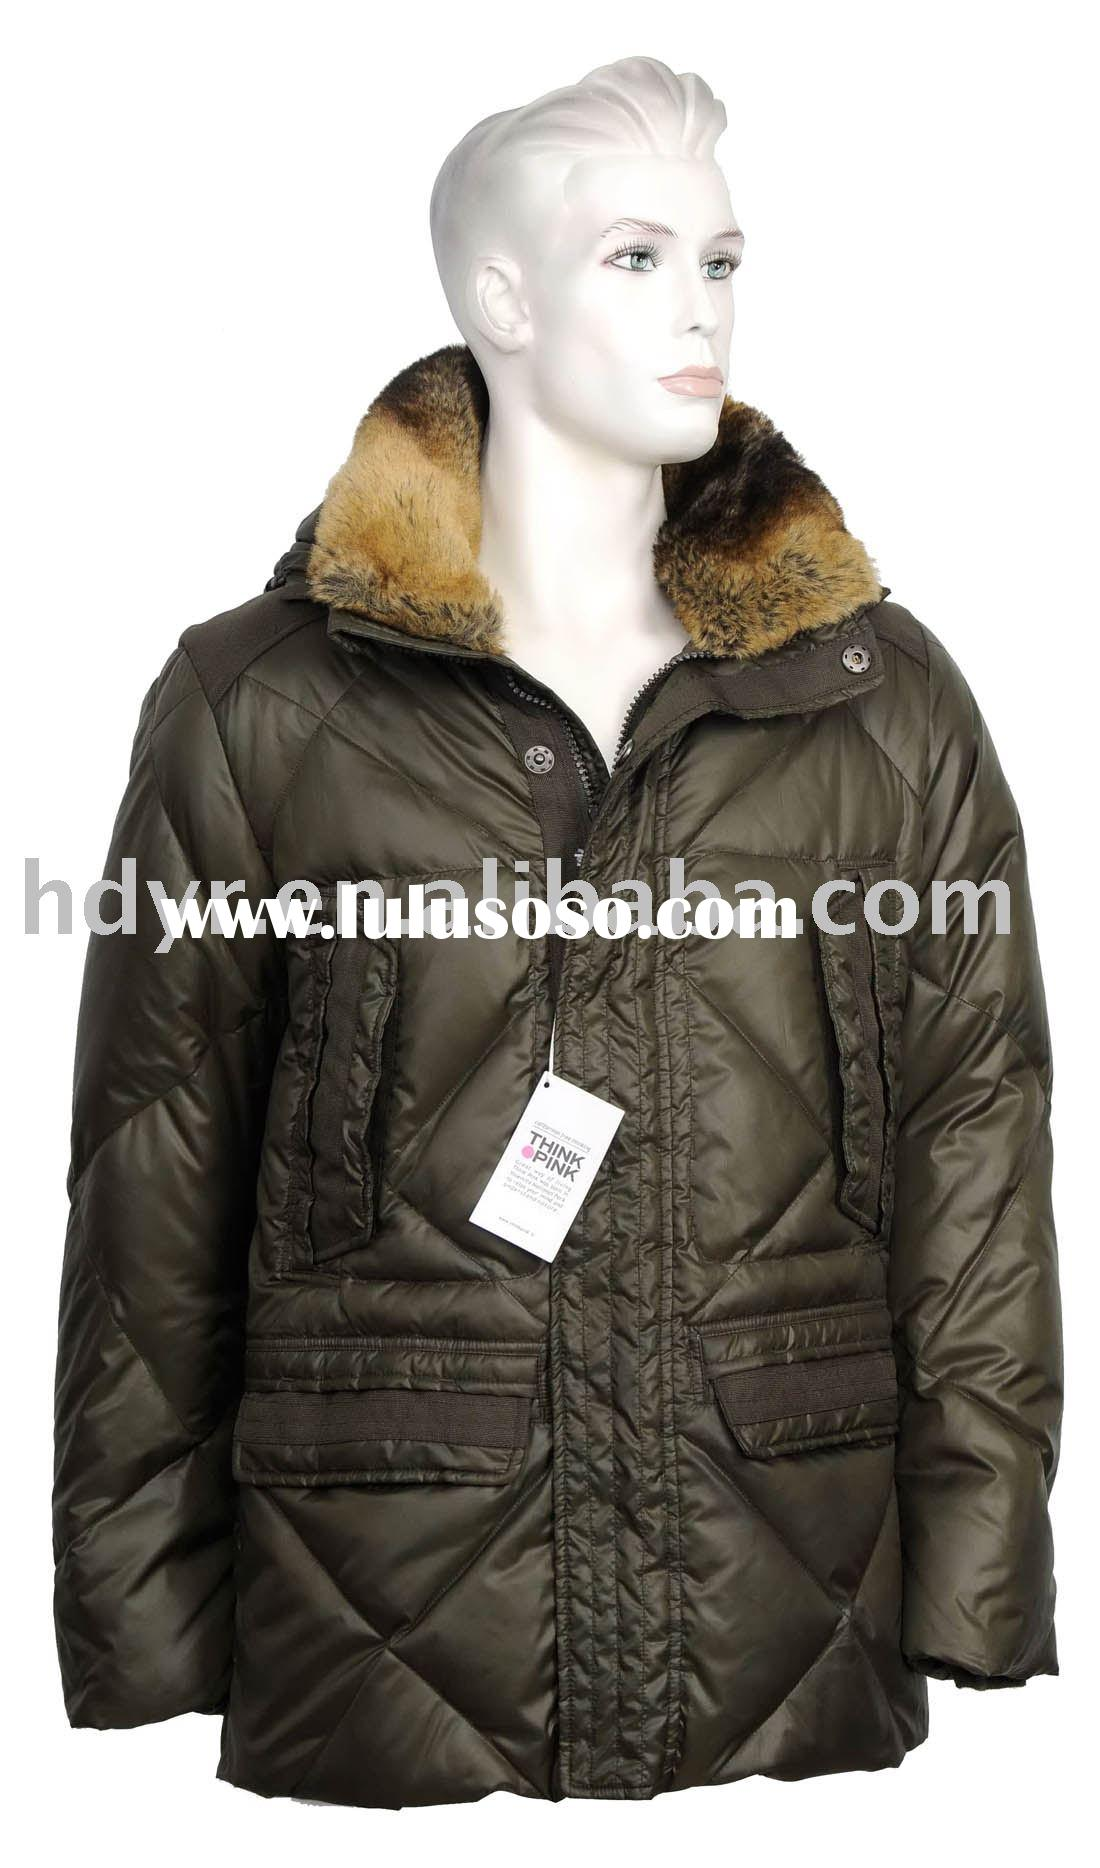 Think Pink Brand Men's Jacket with Fur Collar